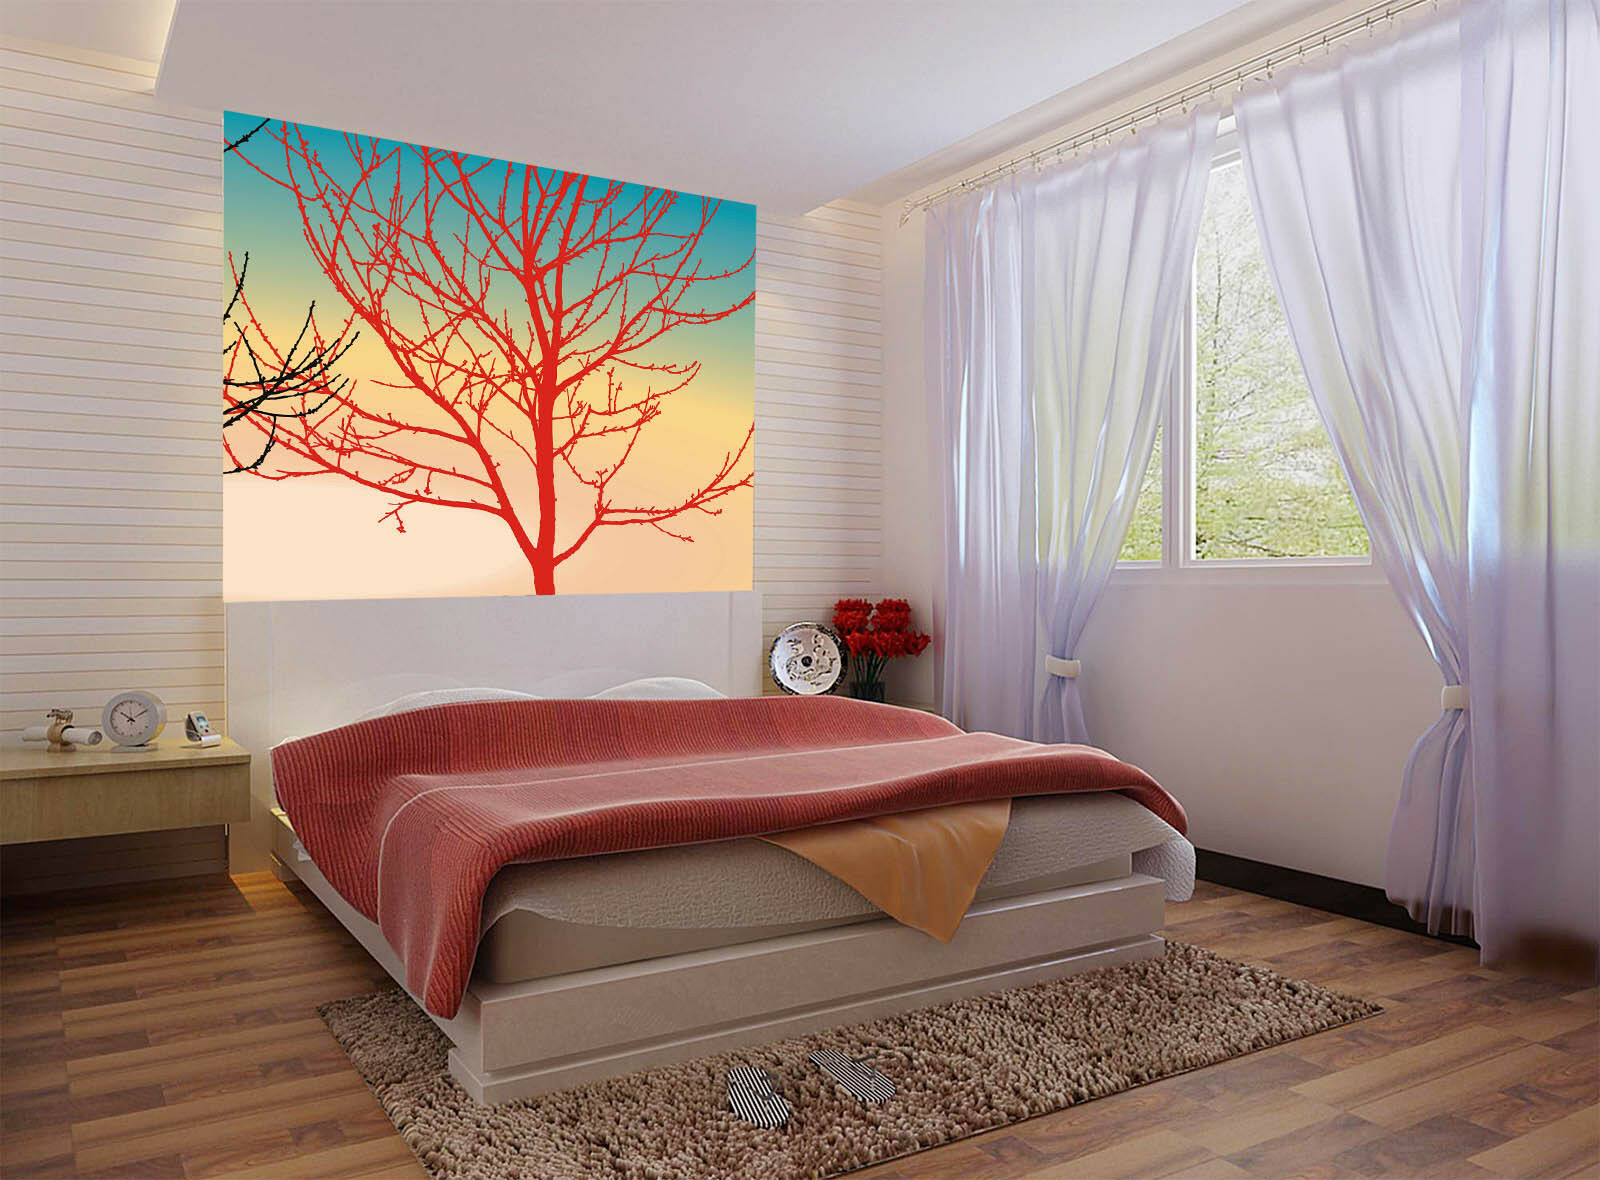 3D ROT Tree Branchs 56 Wall Paper Wall Print Decal Wall Deco Indoor Mural Carly